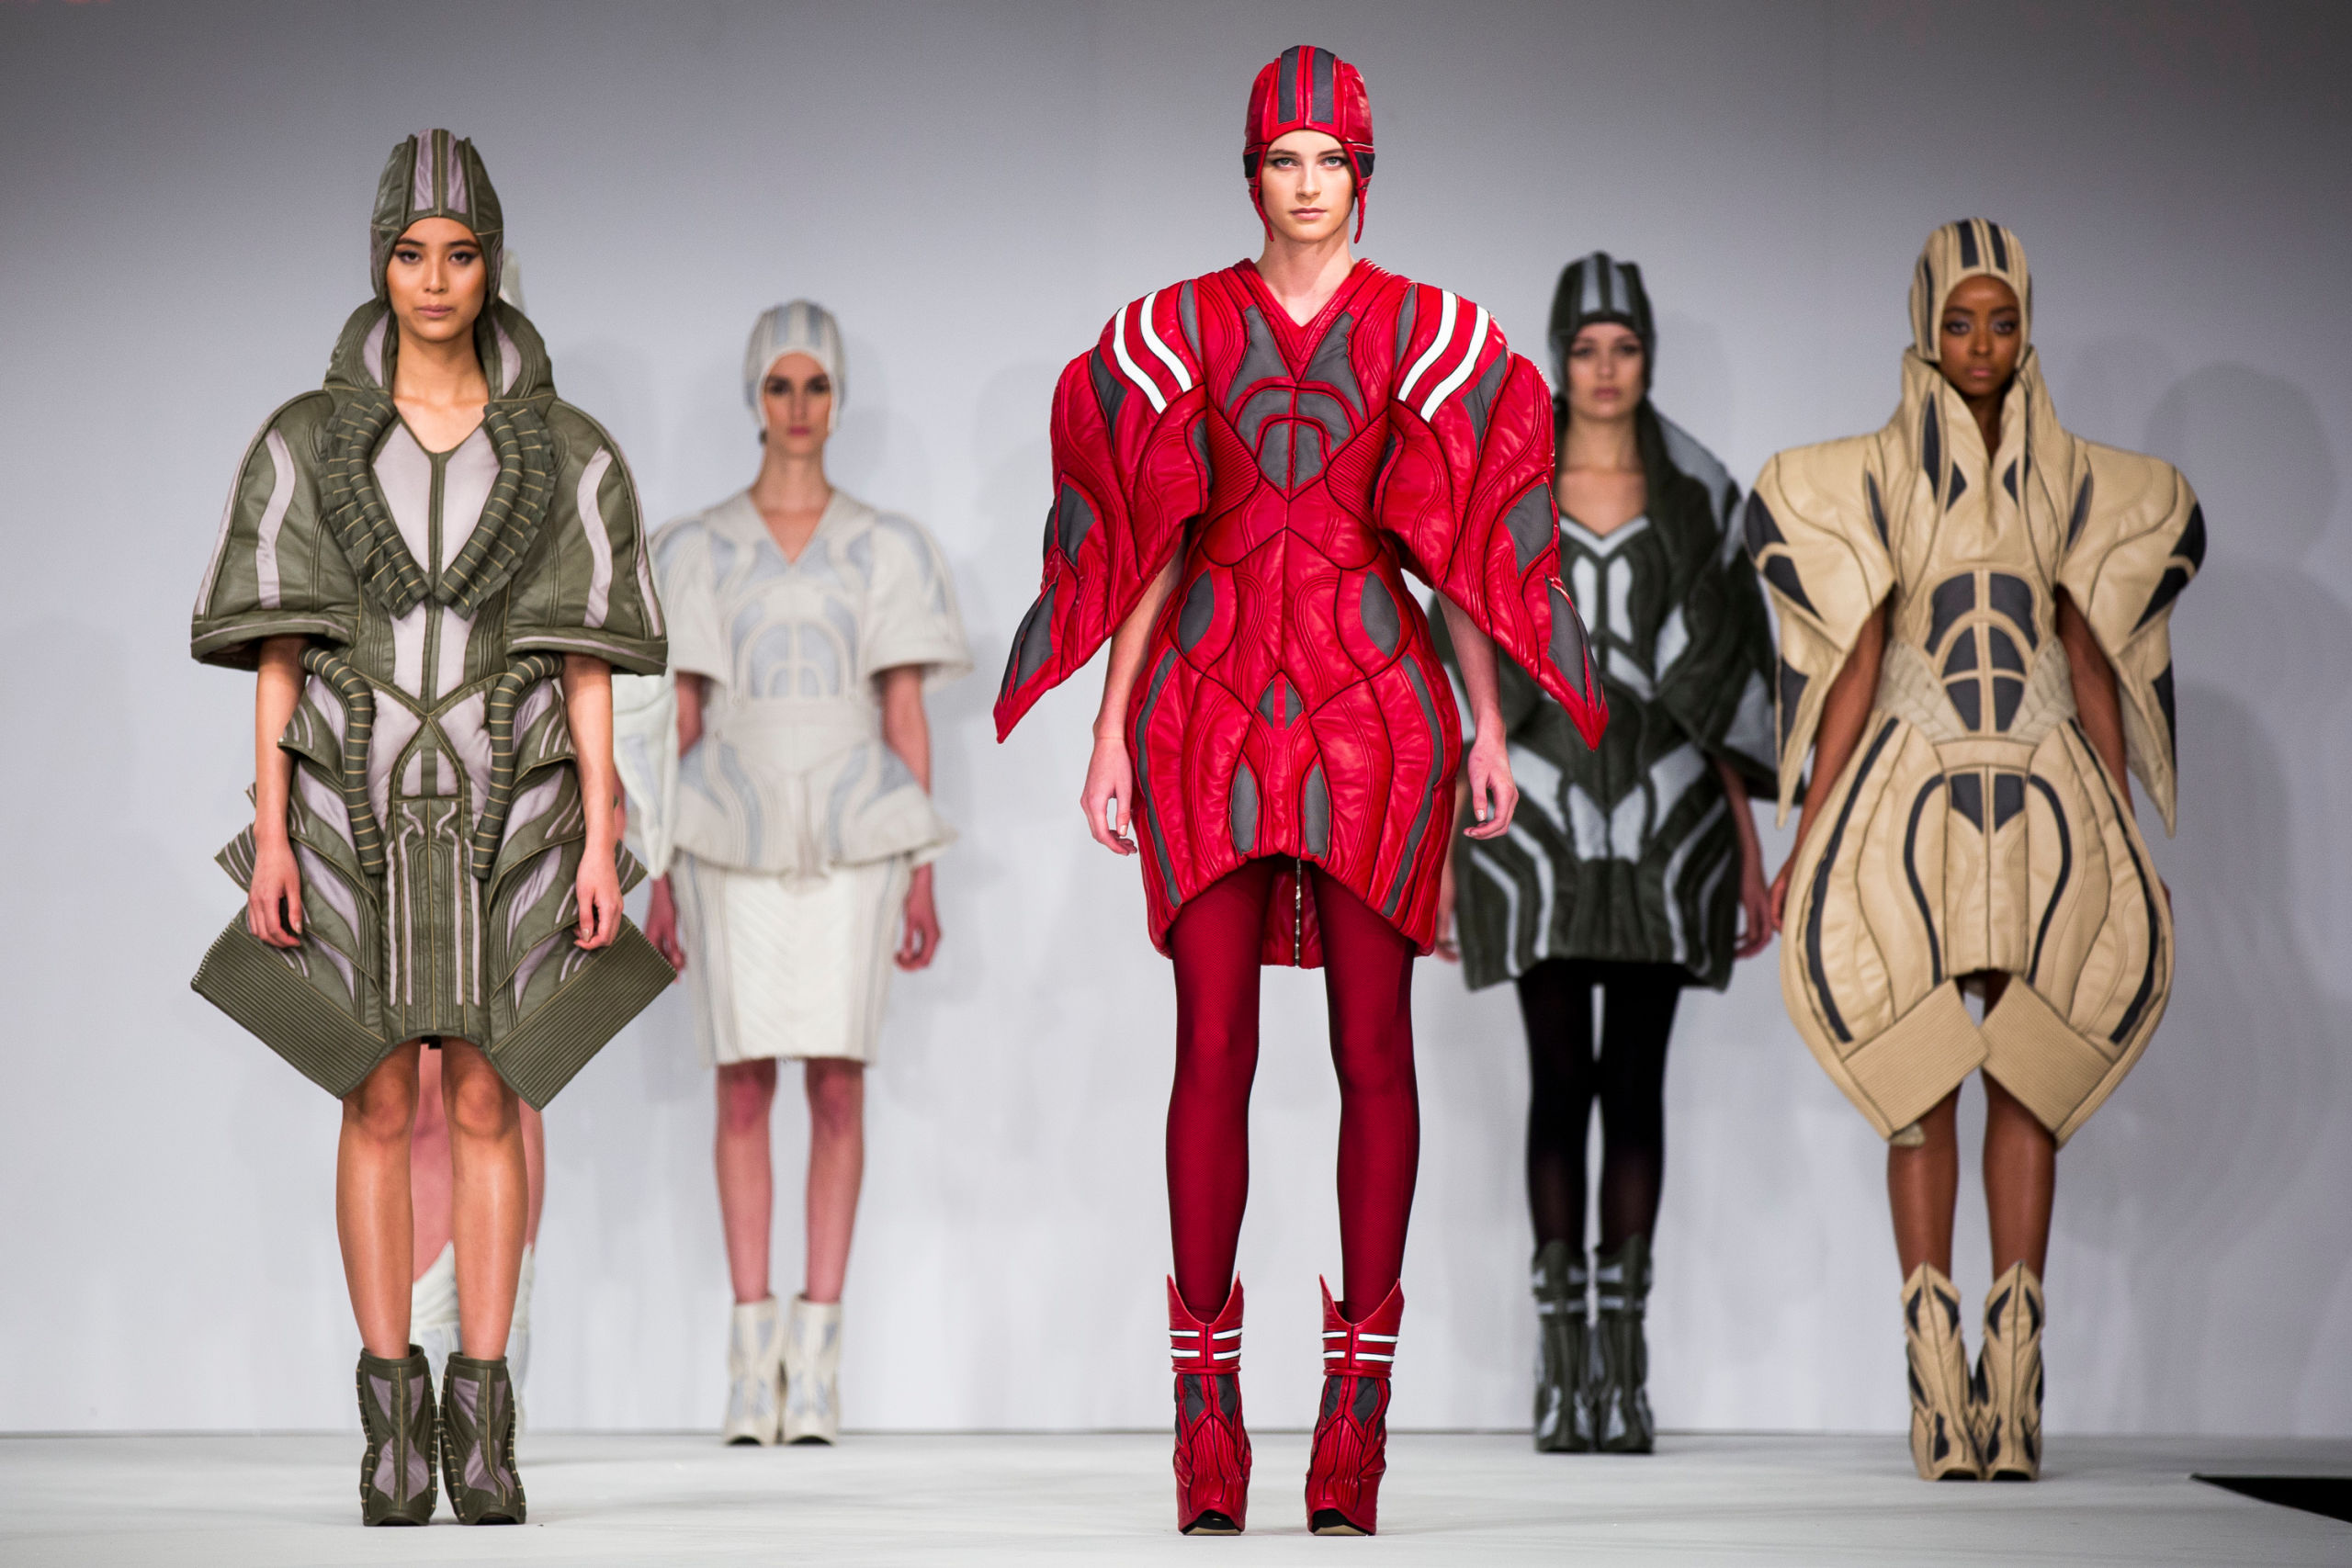 fashion dissertation topics Receive ideas on fashion dissertation topics from experts graduate and post-graduate degree courses in fashion are for those who enjoy using their imagination and talent to create smart clothes.